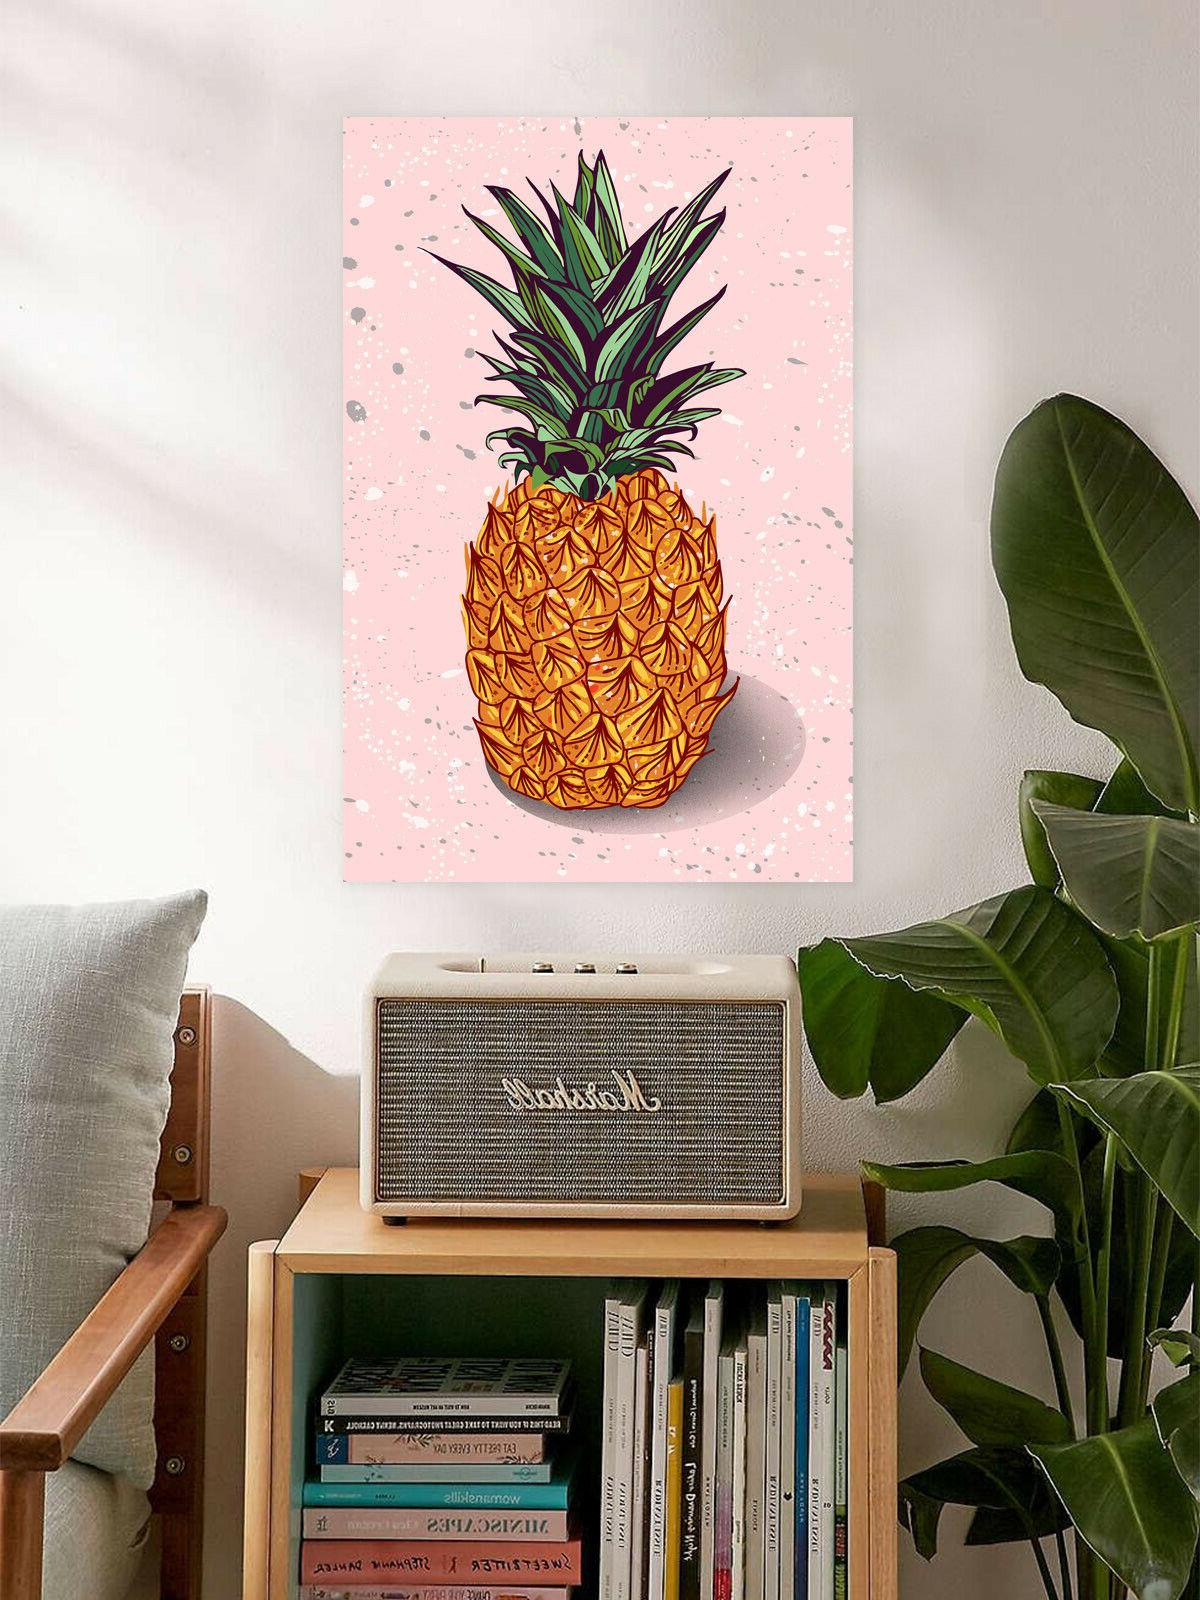 Pineapple Poster Minimalist Home Pink Prints